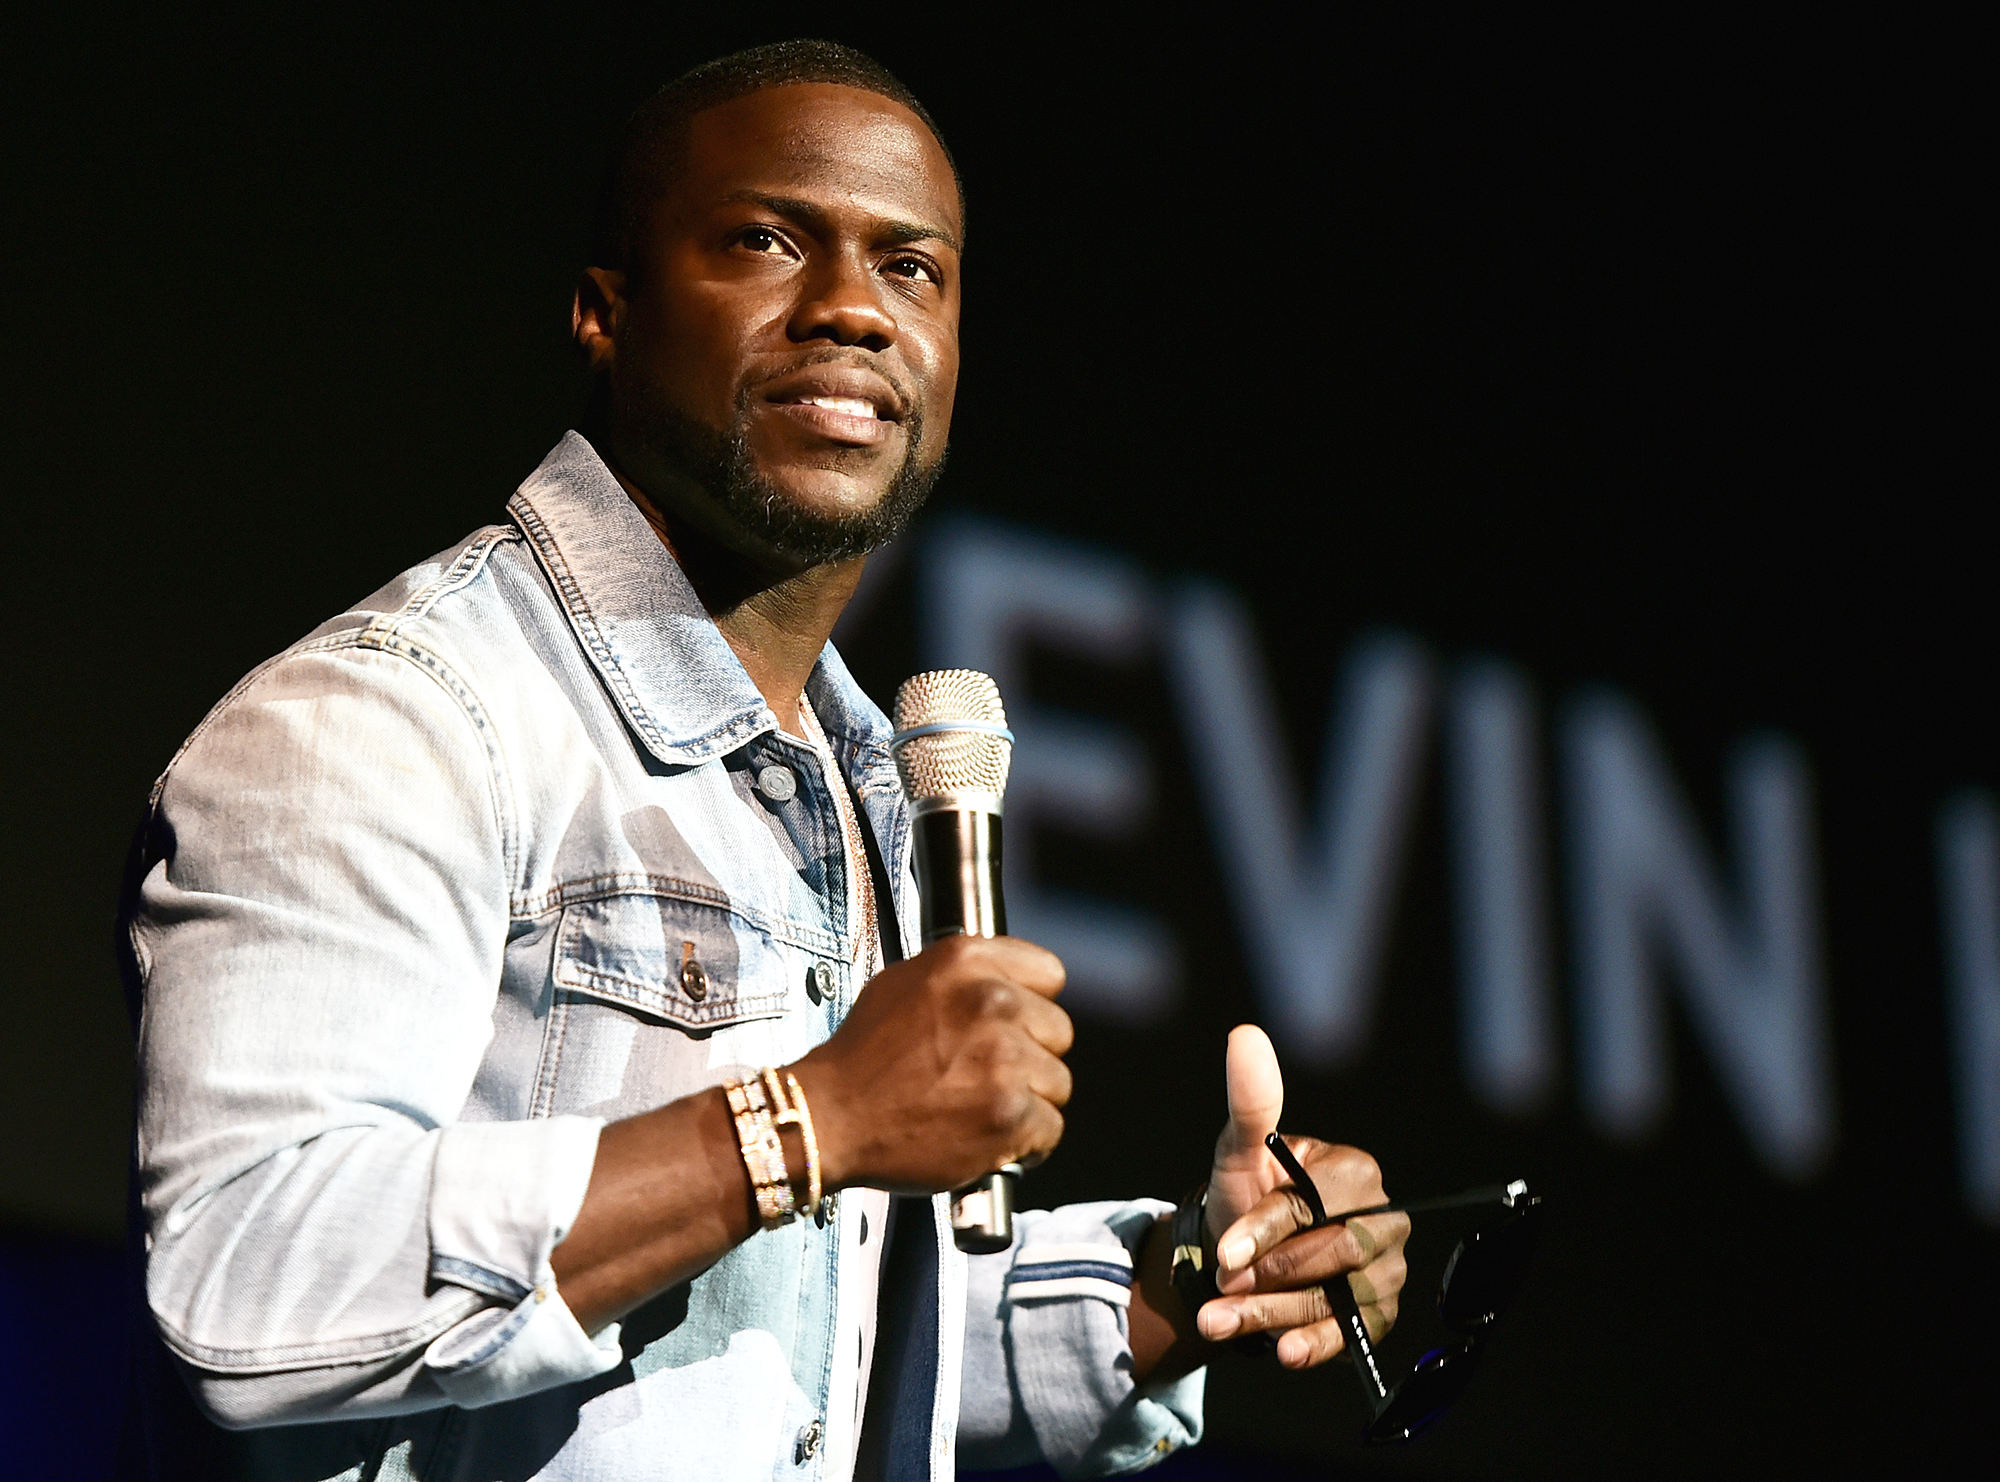 Kevin Hart Comedy Show Crowd Embrace Flaws Oscars Scandal